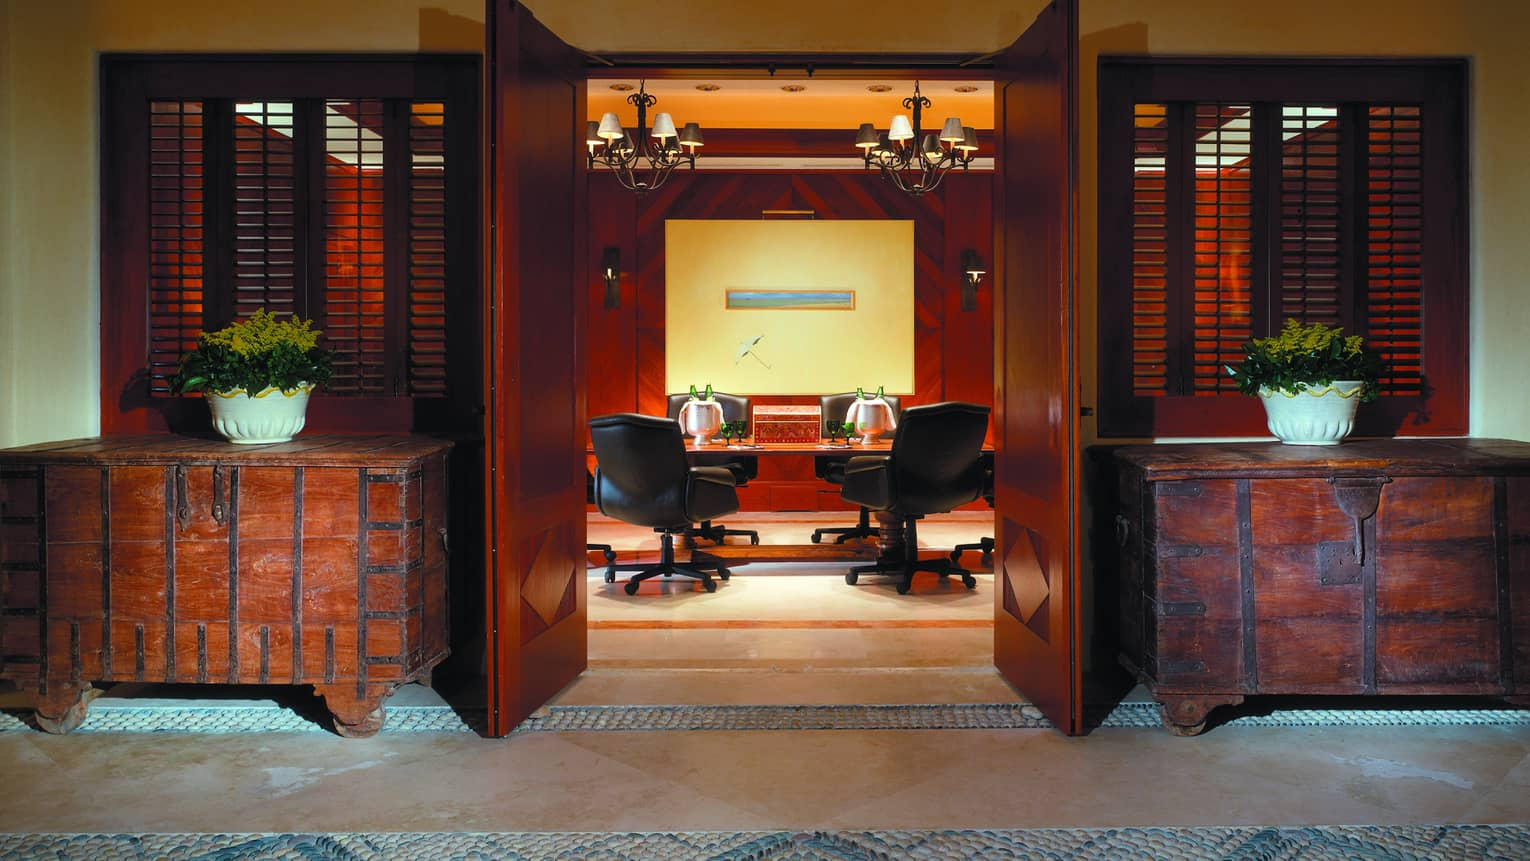 Rustic trunk cabinets flank open doors to Tau meeting room, table